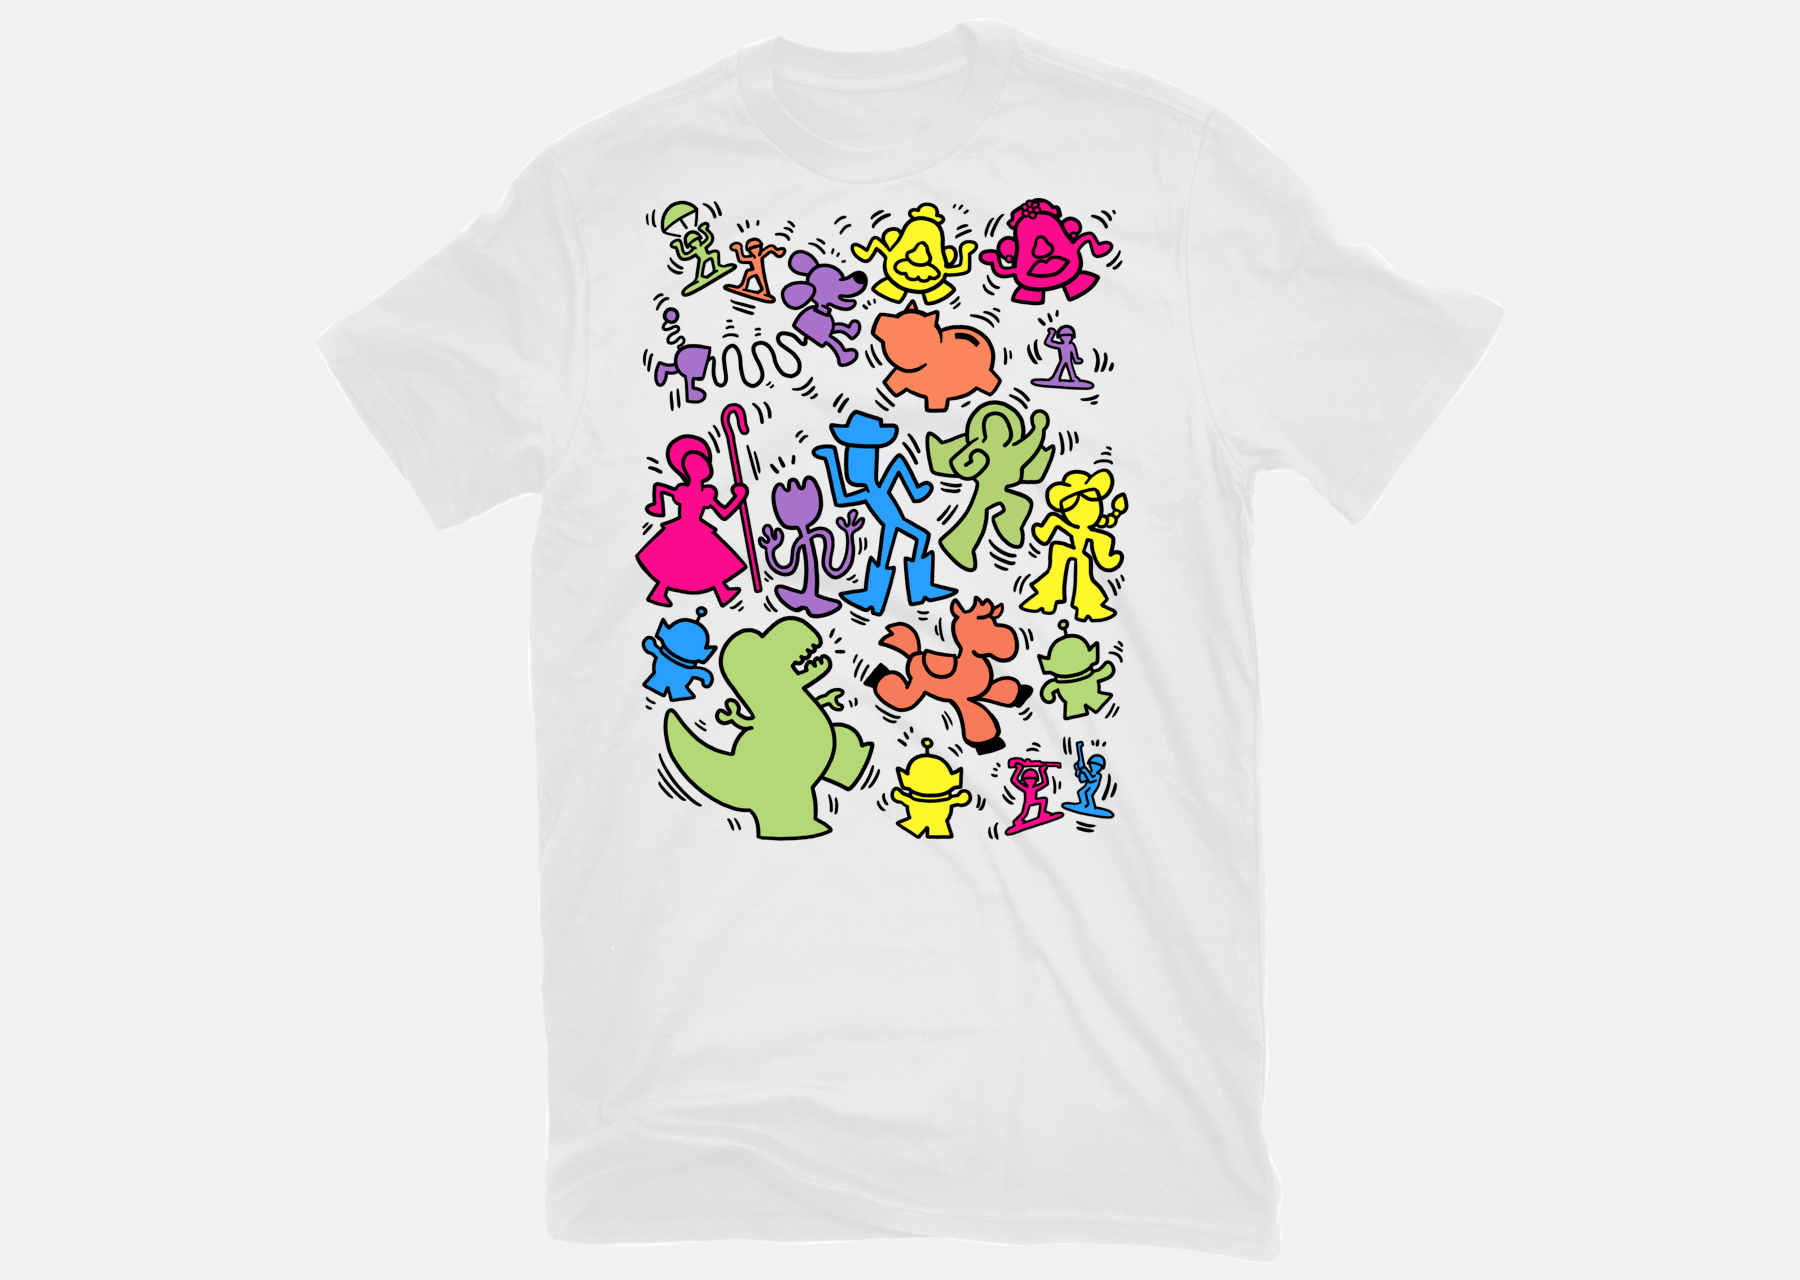 fda04b0d95 The Daily Exclusive | TeeFury